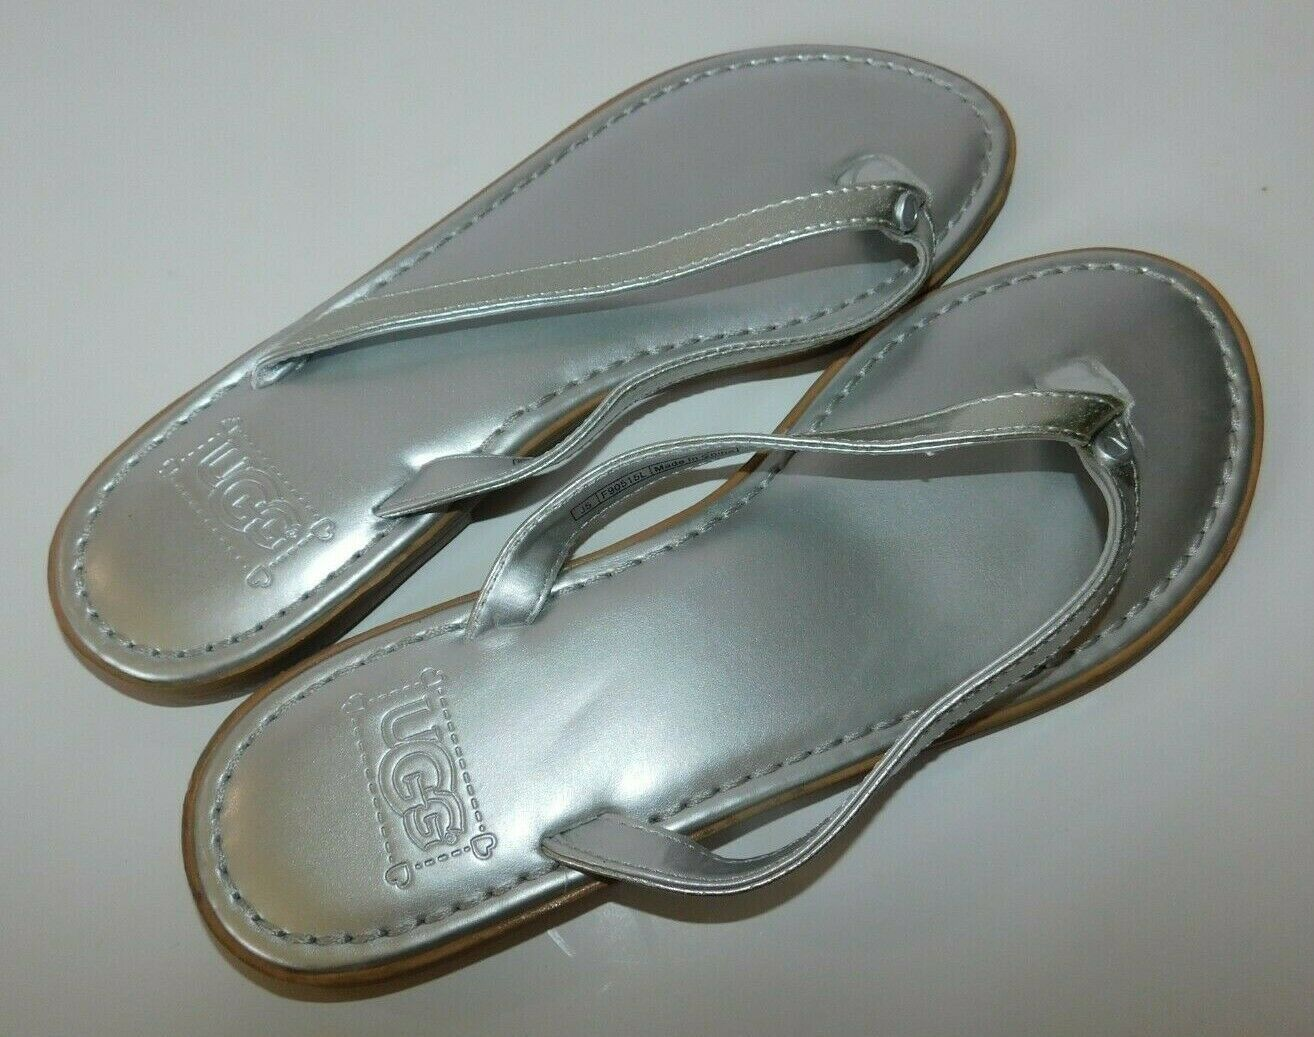 Primary image for UGG Silver Leather Sandals Size 5 Brand New